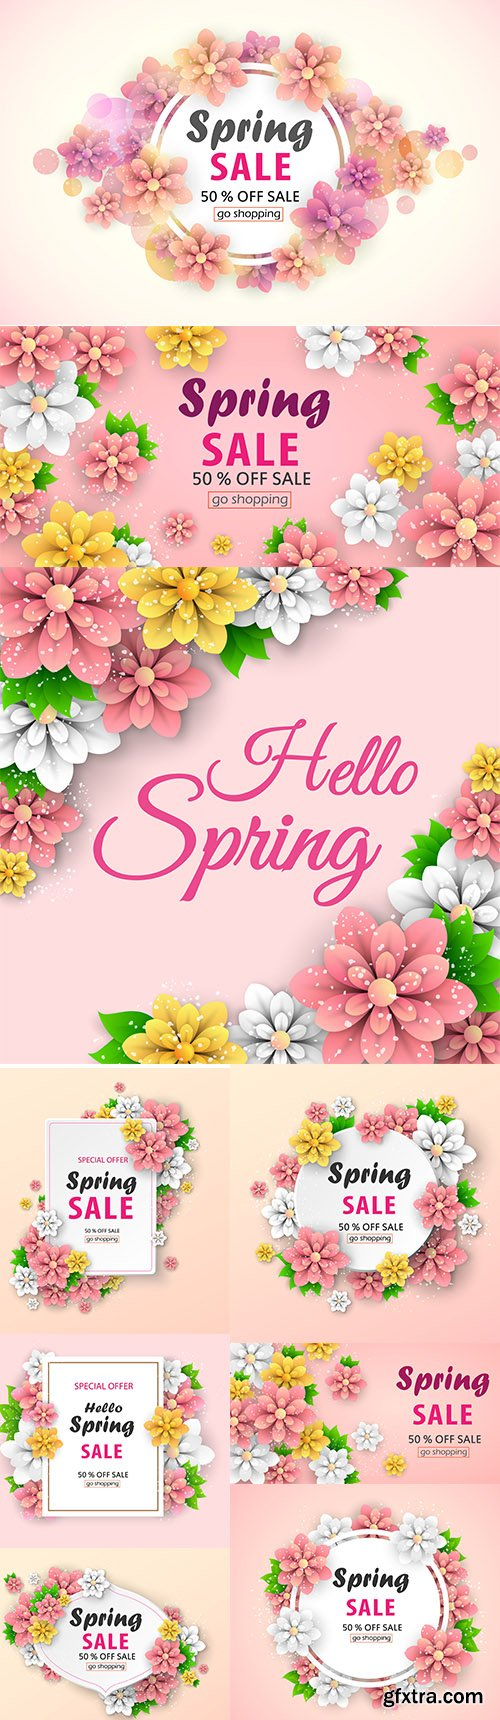 Colorful Spring Sale Banner with Beautiful Flowers Backgrounds